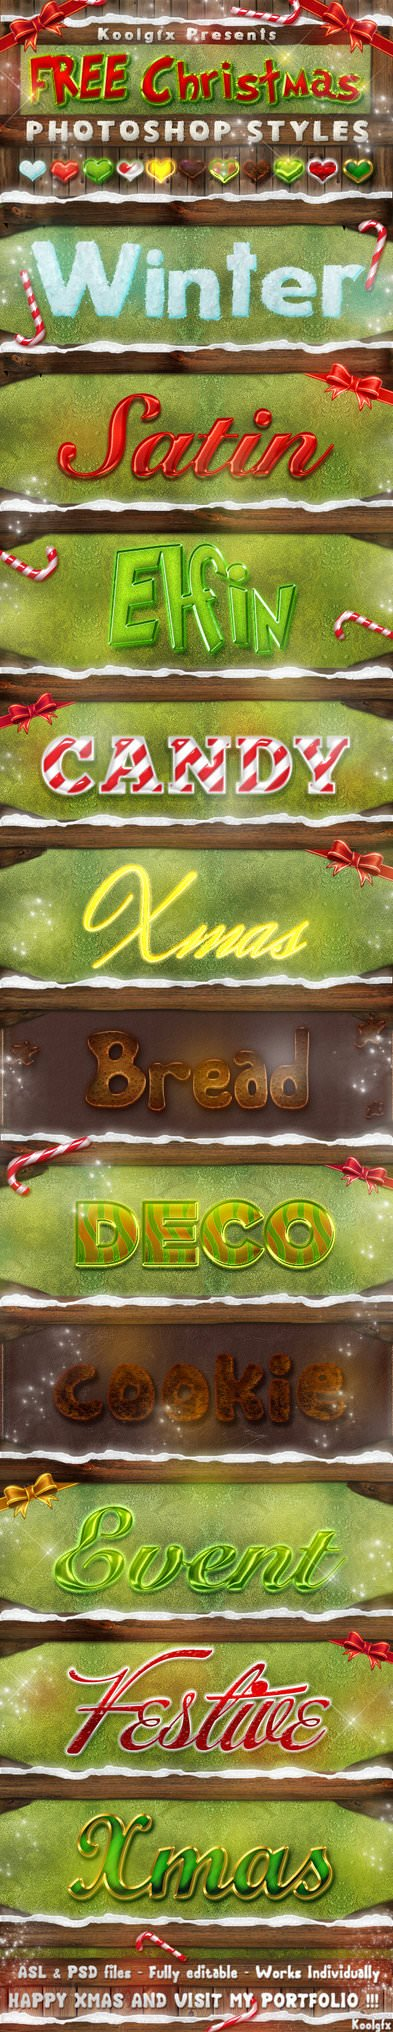 FREE Christmas Photoshop Styles – Text Effects